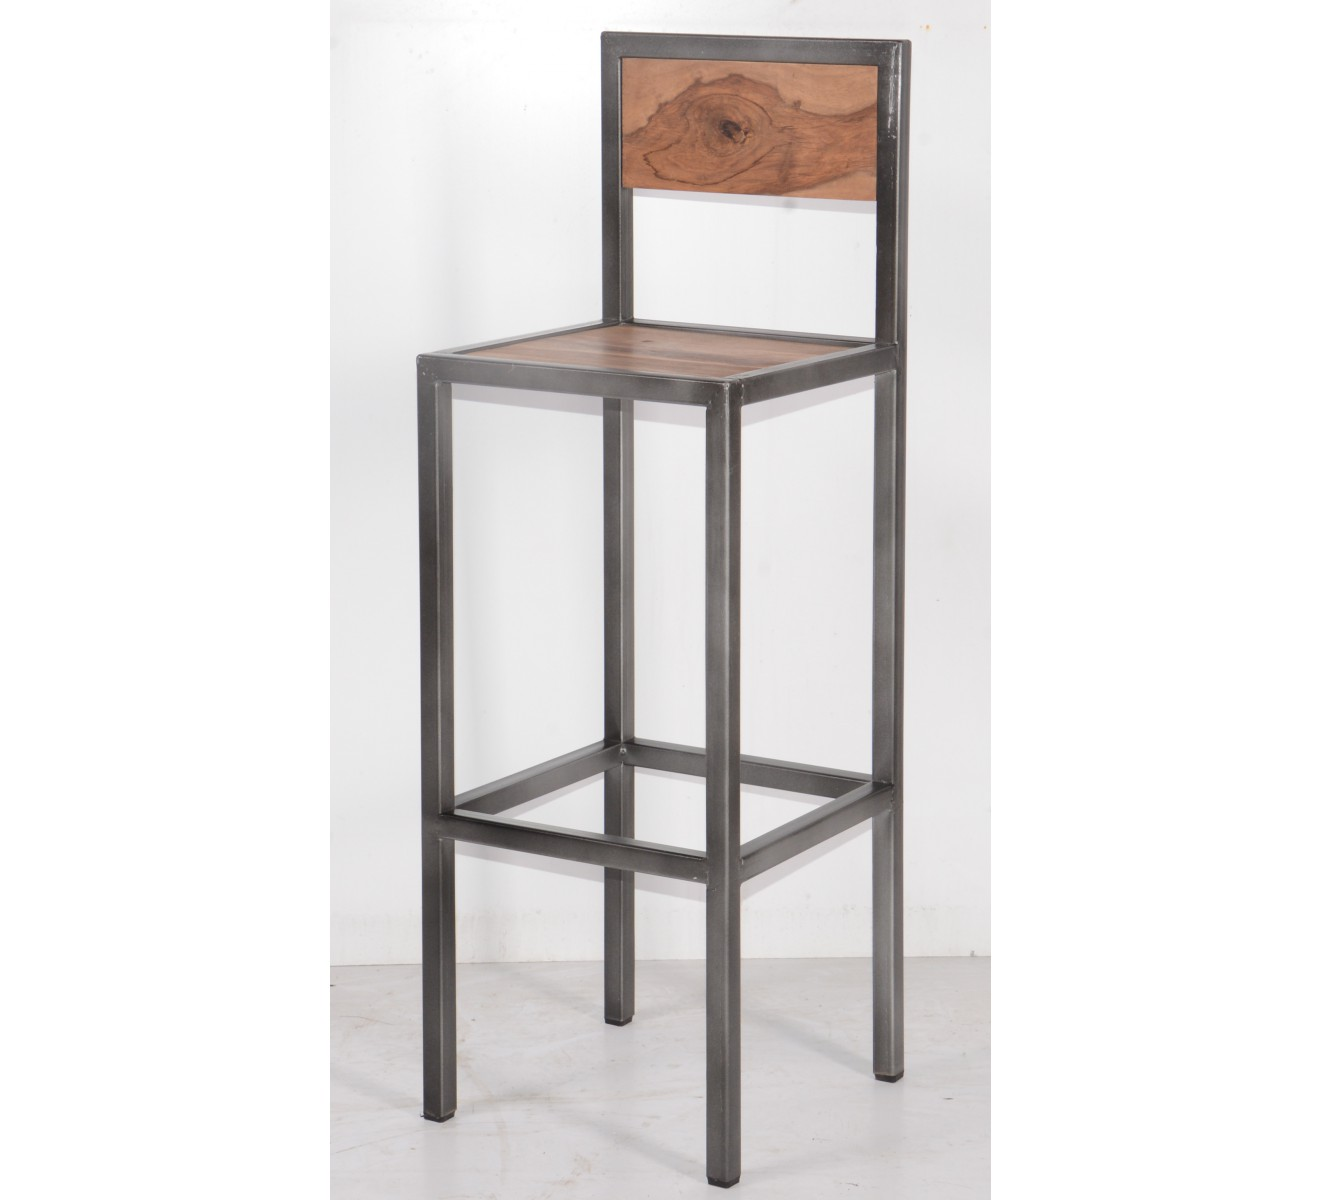 Tabouret de bar industriel en m tal et bois 39 industry 6748 - Chaise de bar industriel ...